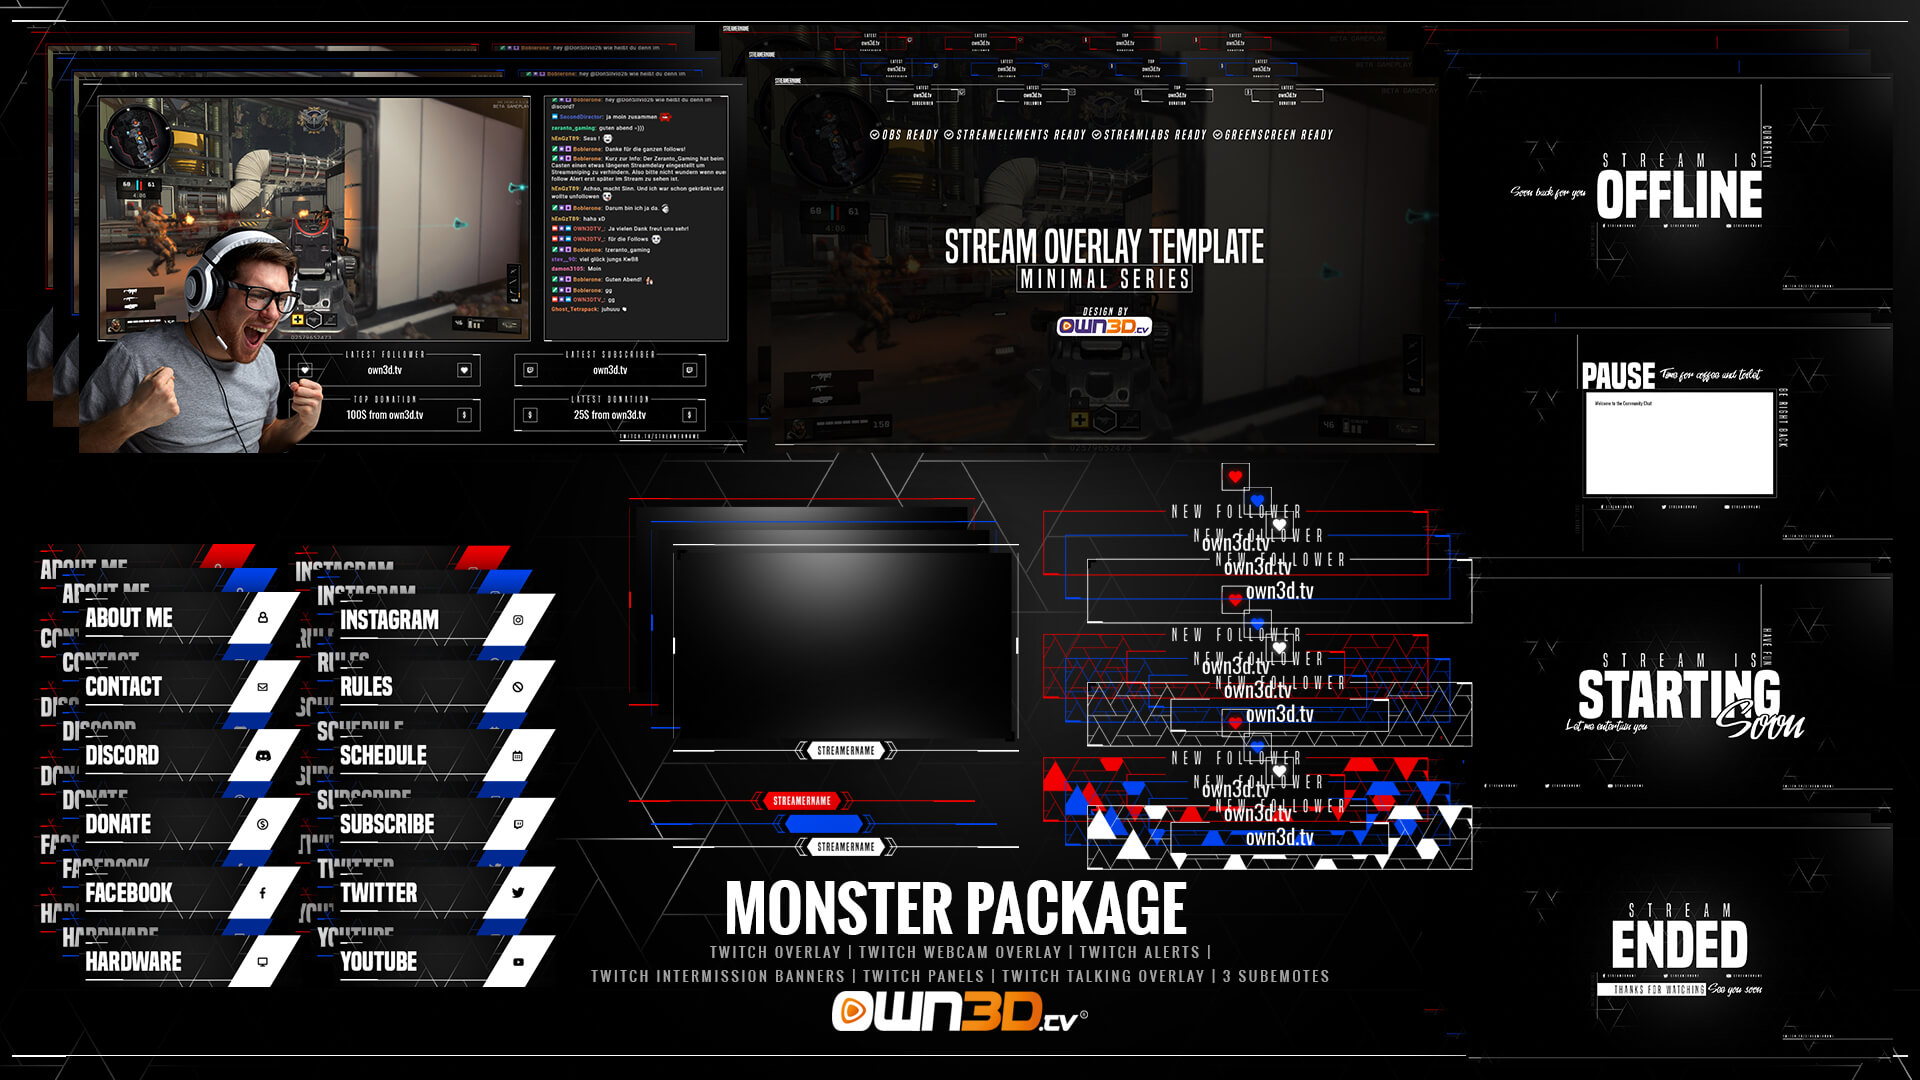 minimal-series-ALL-twitch-overlay-package-03-monster.jpg